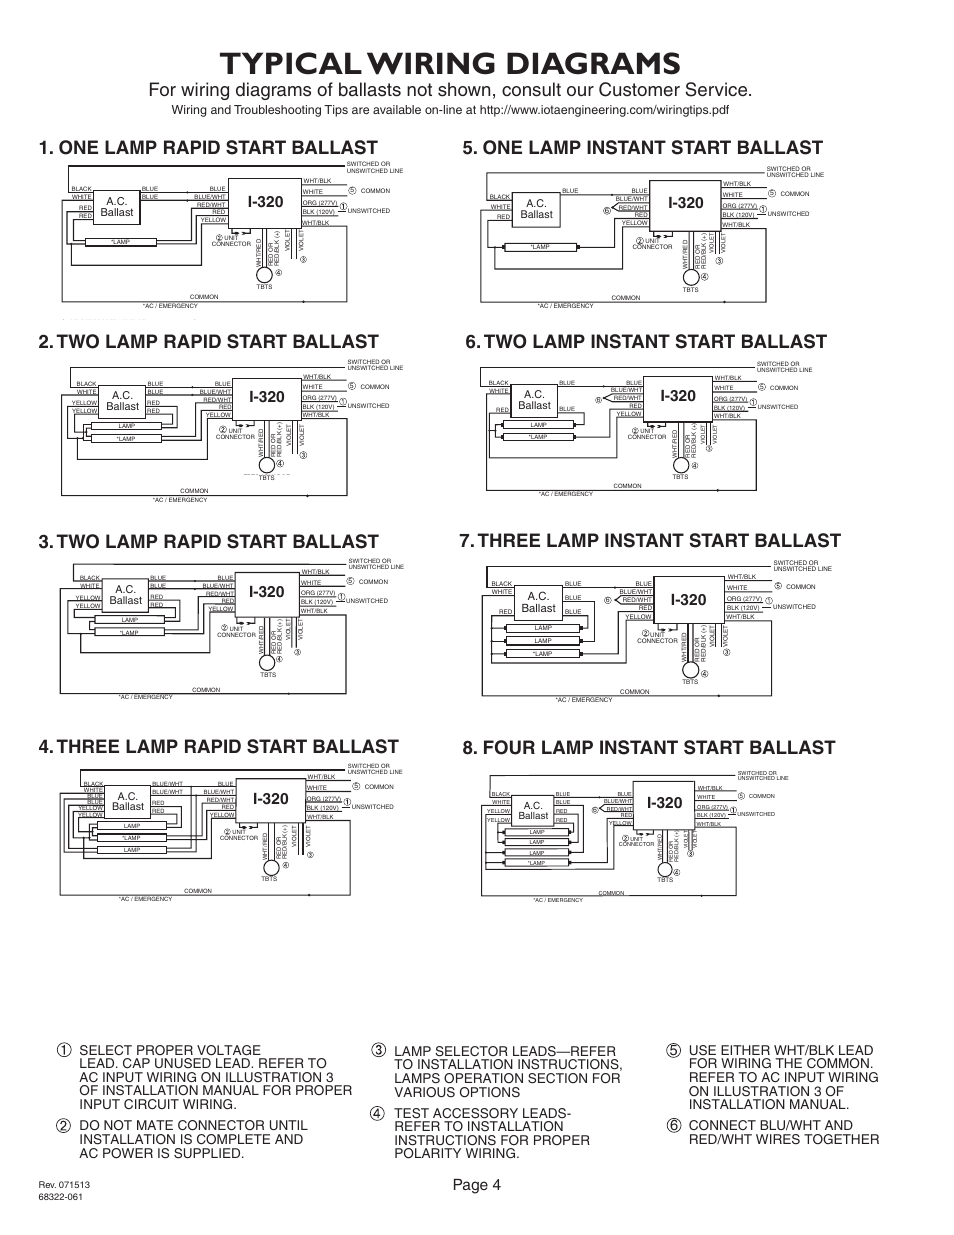 iota i 320 page4 eb60 emergency ballasts wiring diagram diagram wiring diagrams  at fashall.co